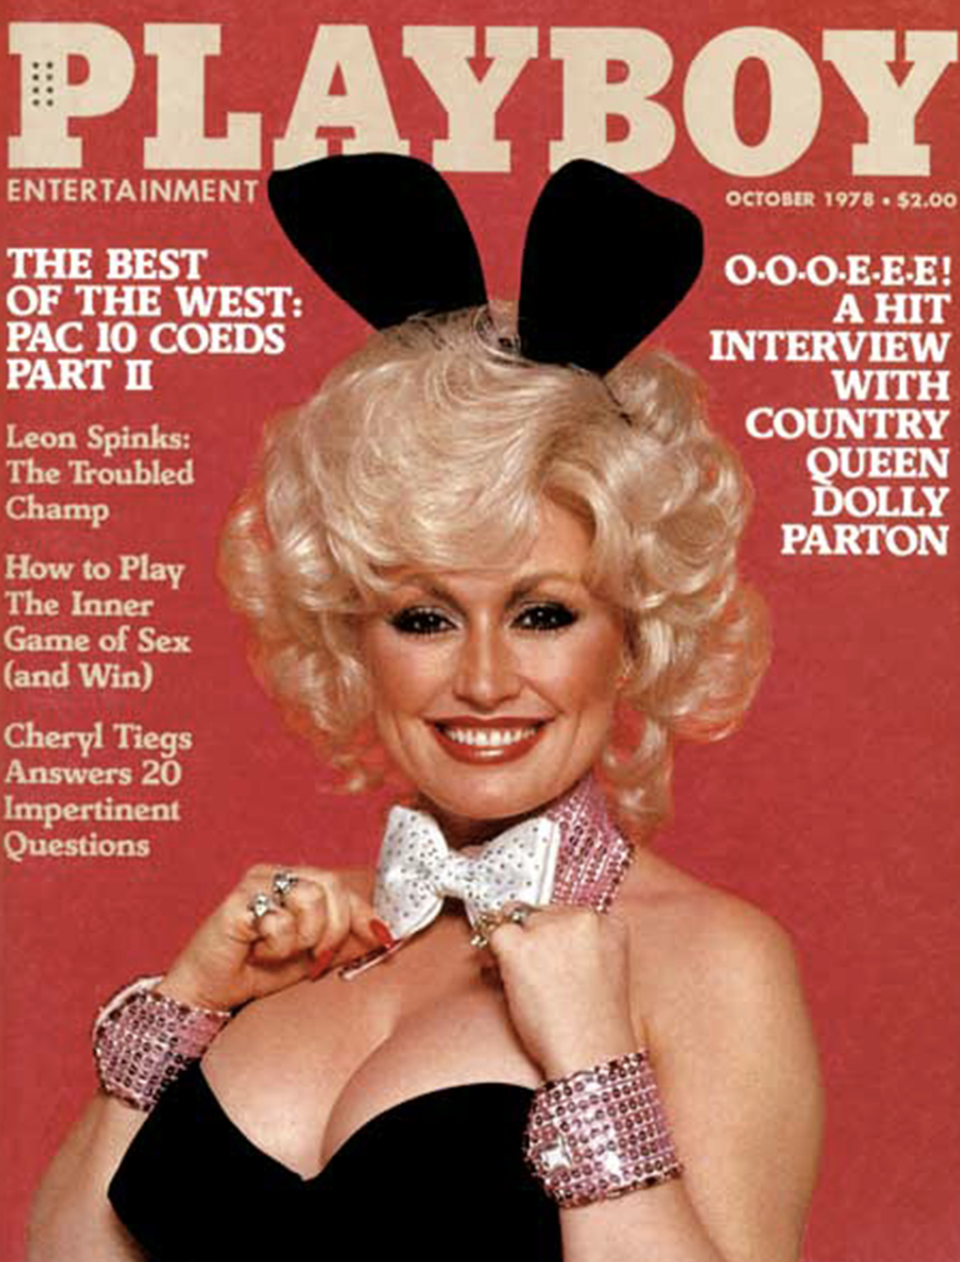 Dolly Parton on the October 1978 cover of Playboy. (Playboy)